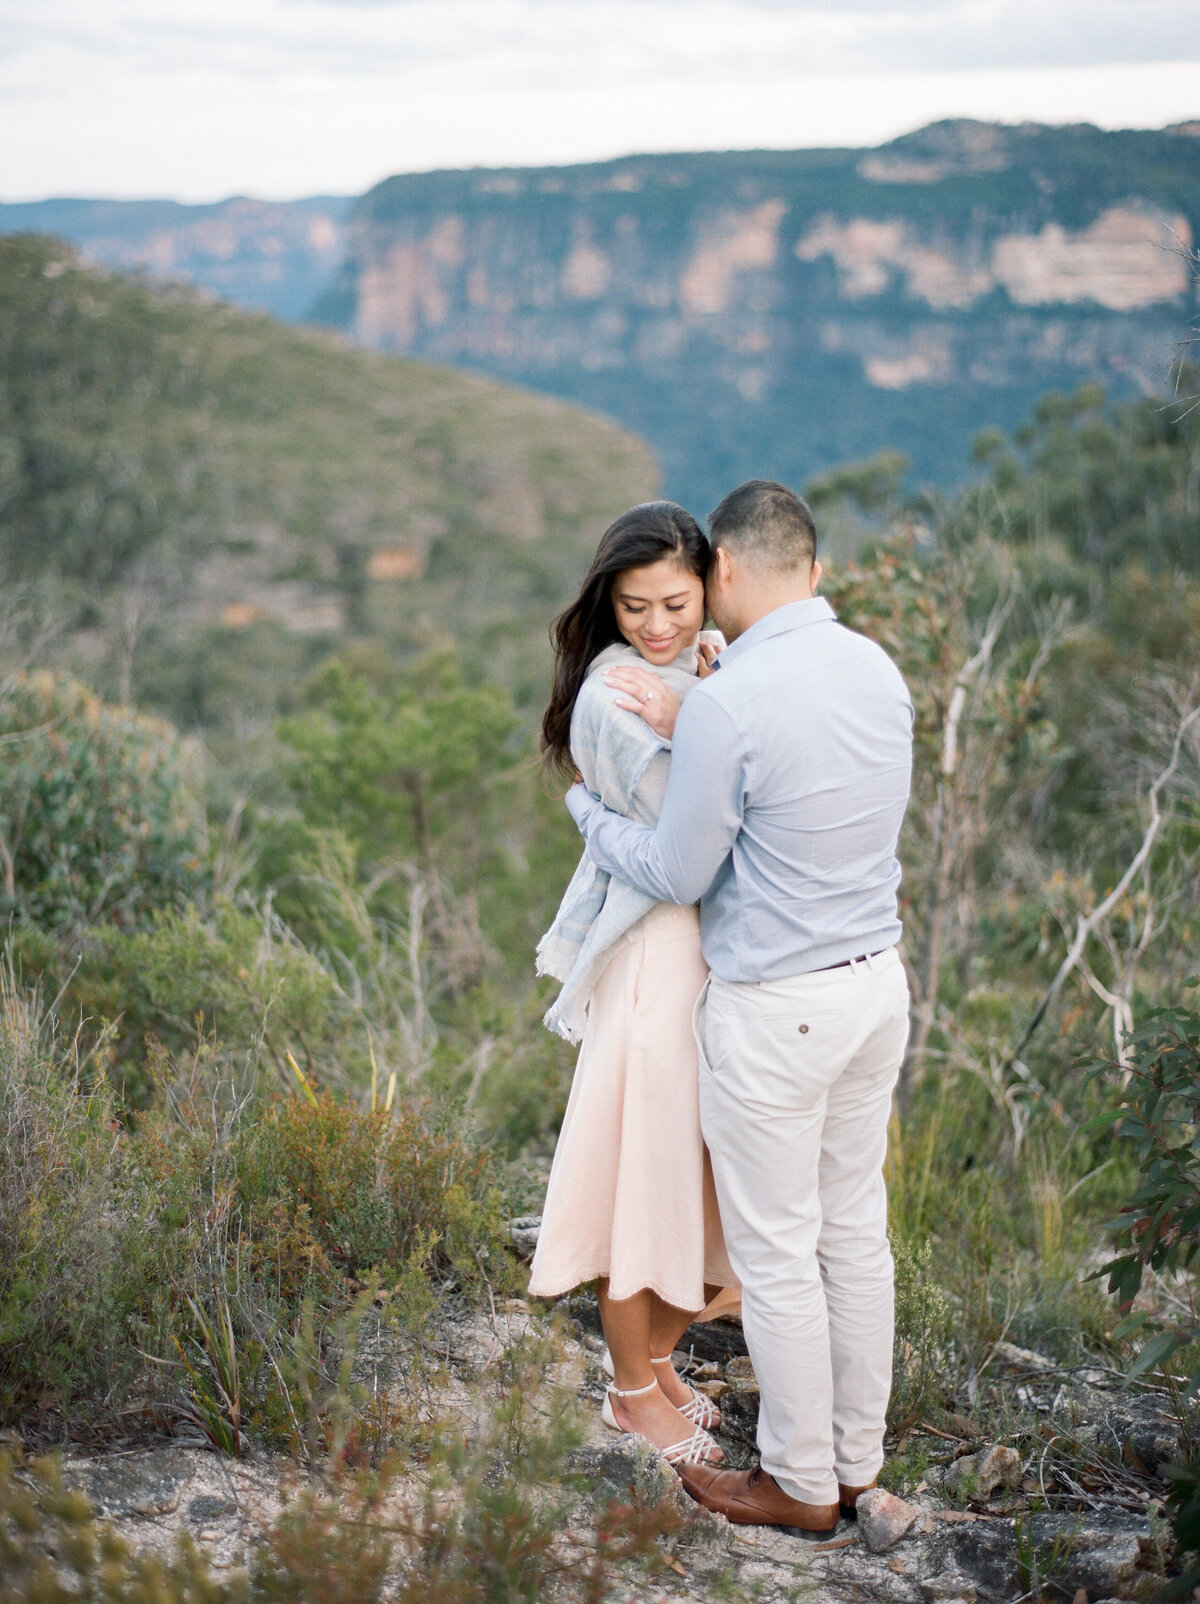 weareorigami-katrina-michael-engagement-0024